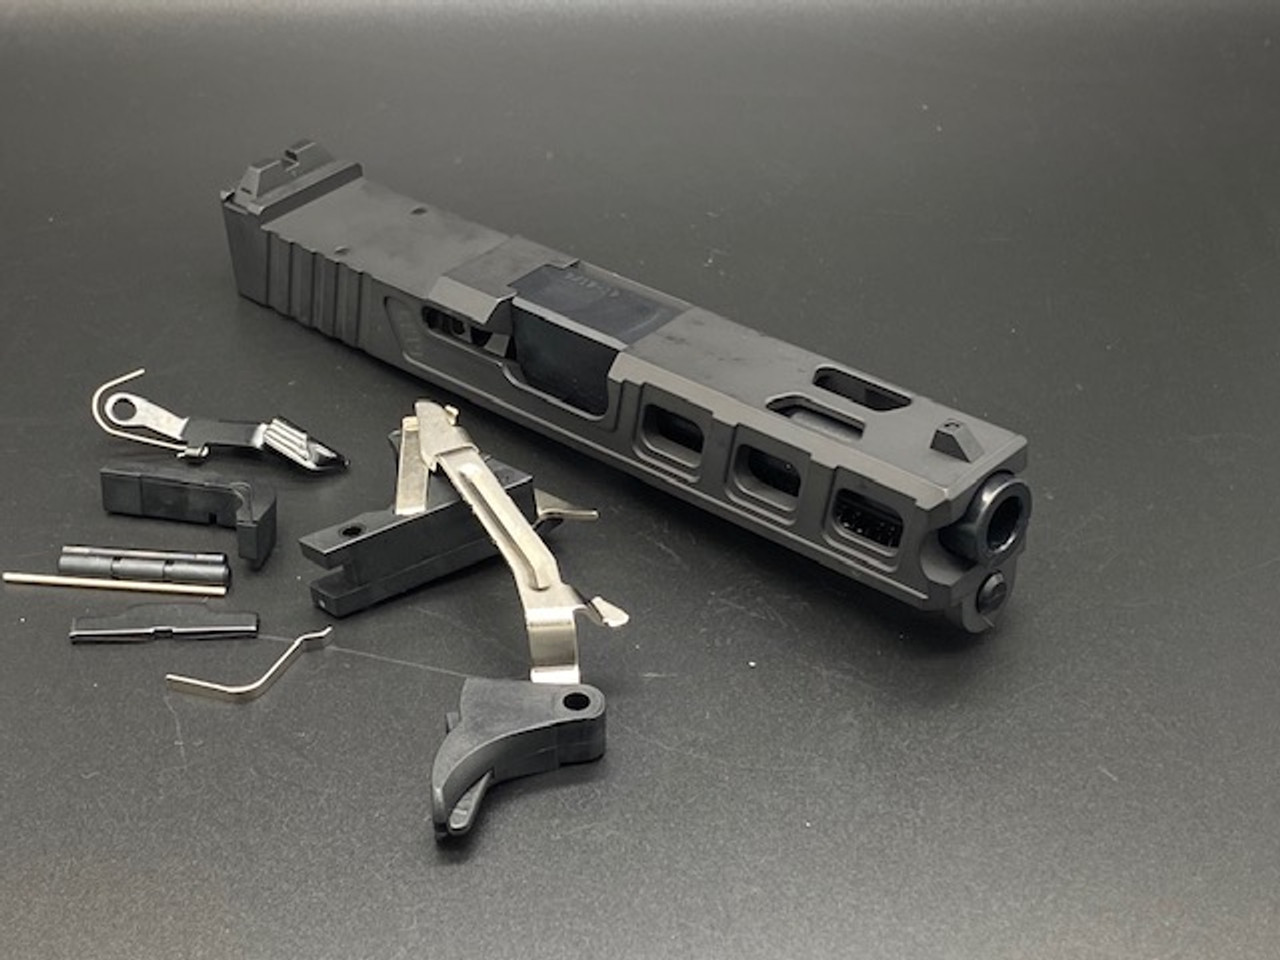 MDX Arms G26 LF26 with RMR Cut Build Kit - No Frame